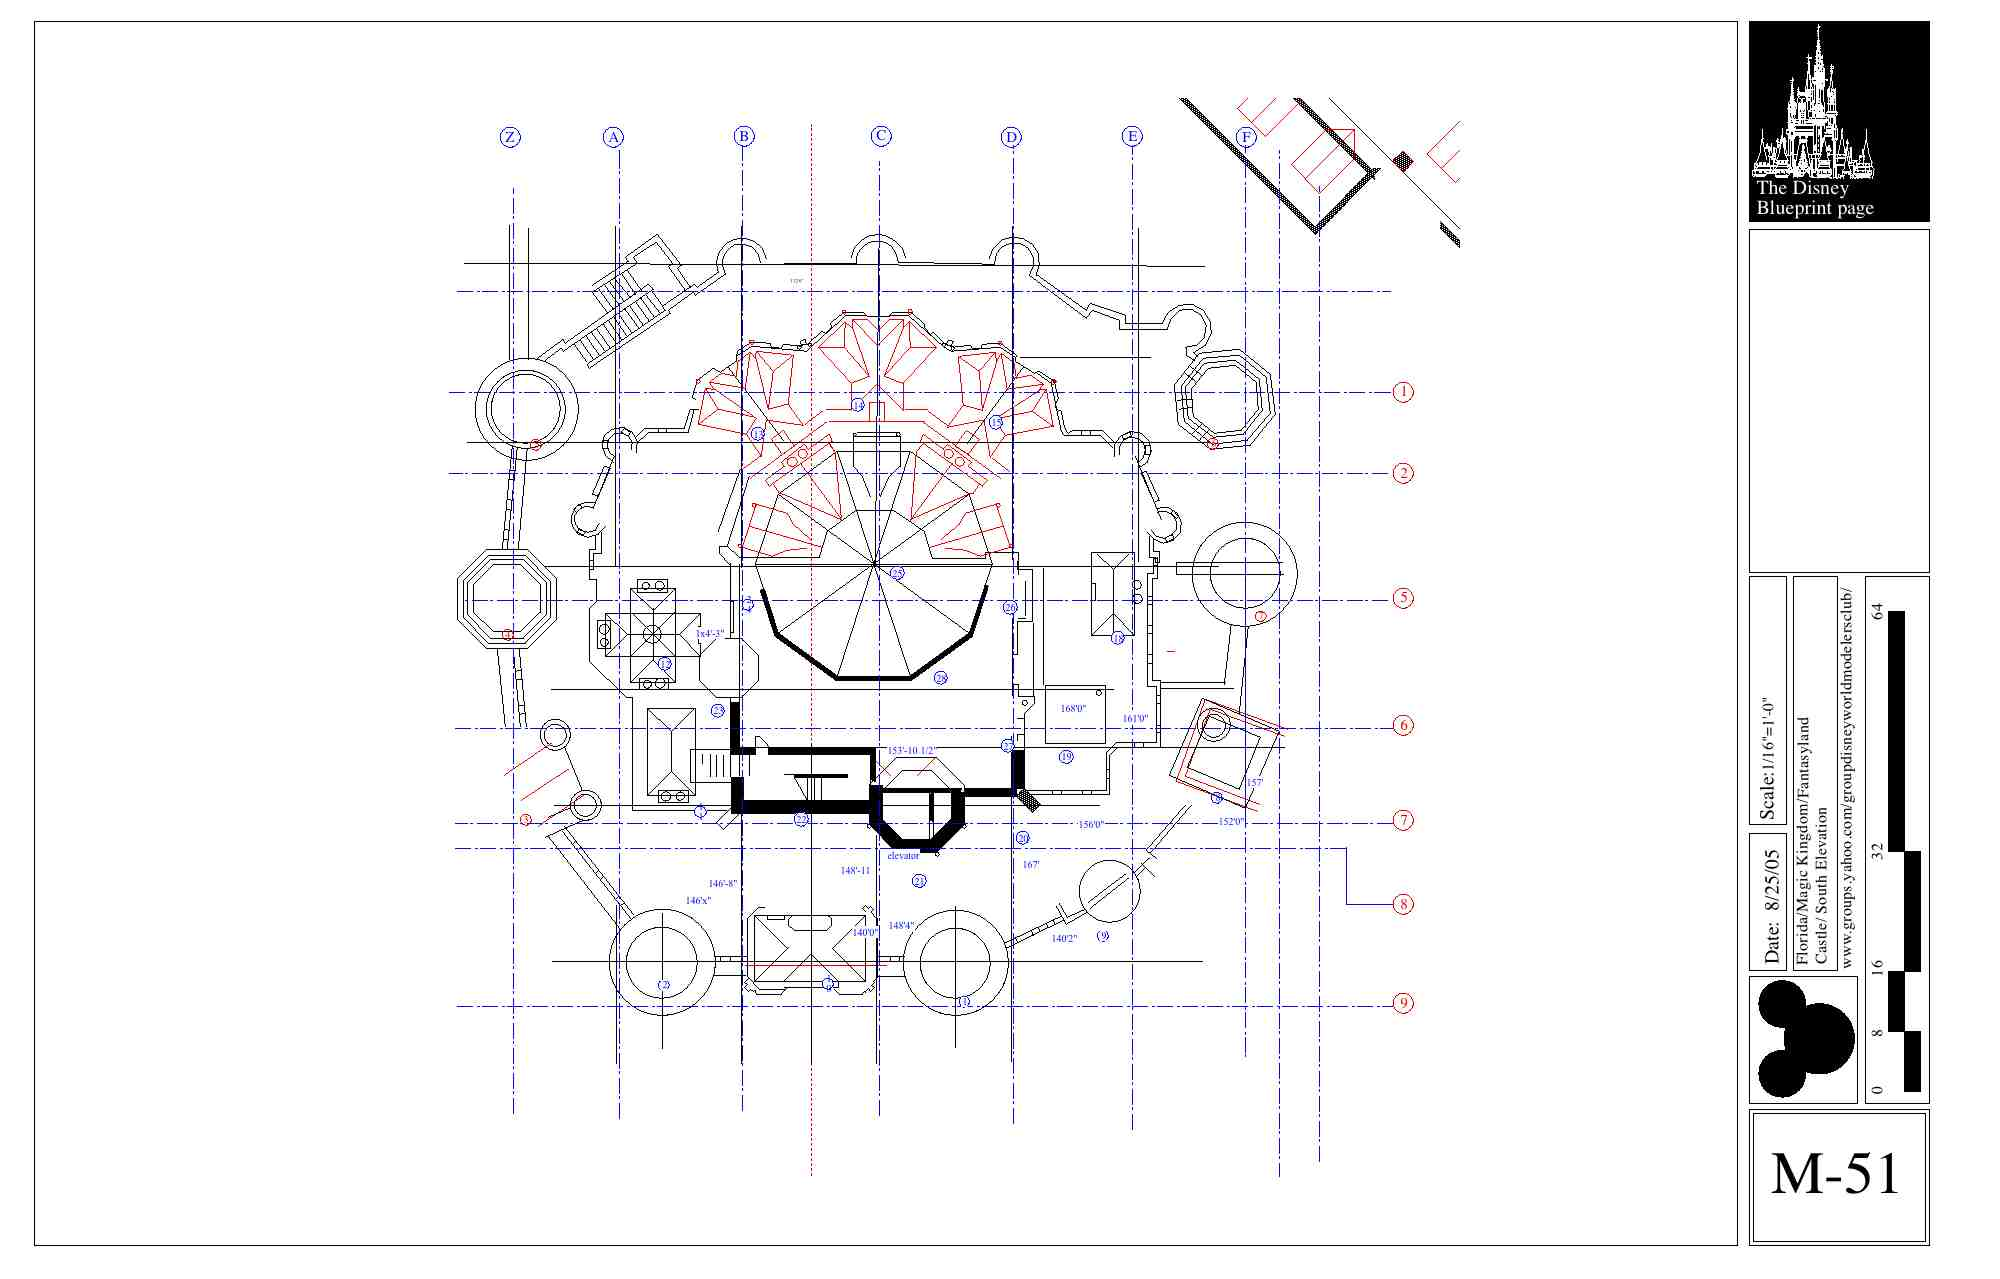 Blueprints Cinderella Castle Magic Kingdom Park Walt Disney World furthermore File Dehio I 42 St Gallen as well House Plans By Cost To Build furthermore Floorplan Carbisdale Castle Ardgay Sutherland likewise Balcony Level Floor Plan. on castle house plans designs